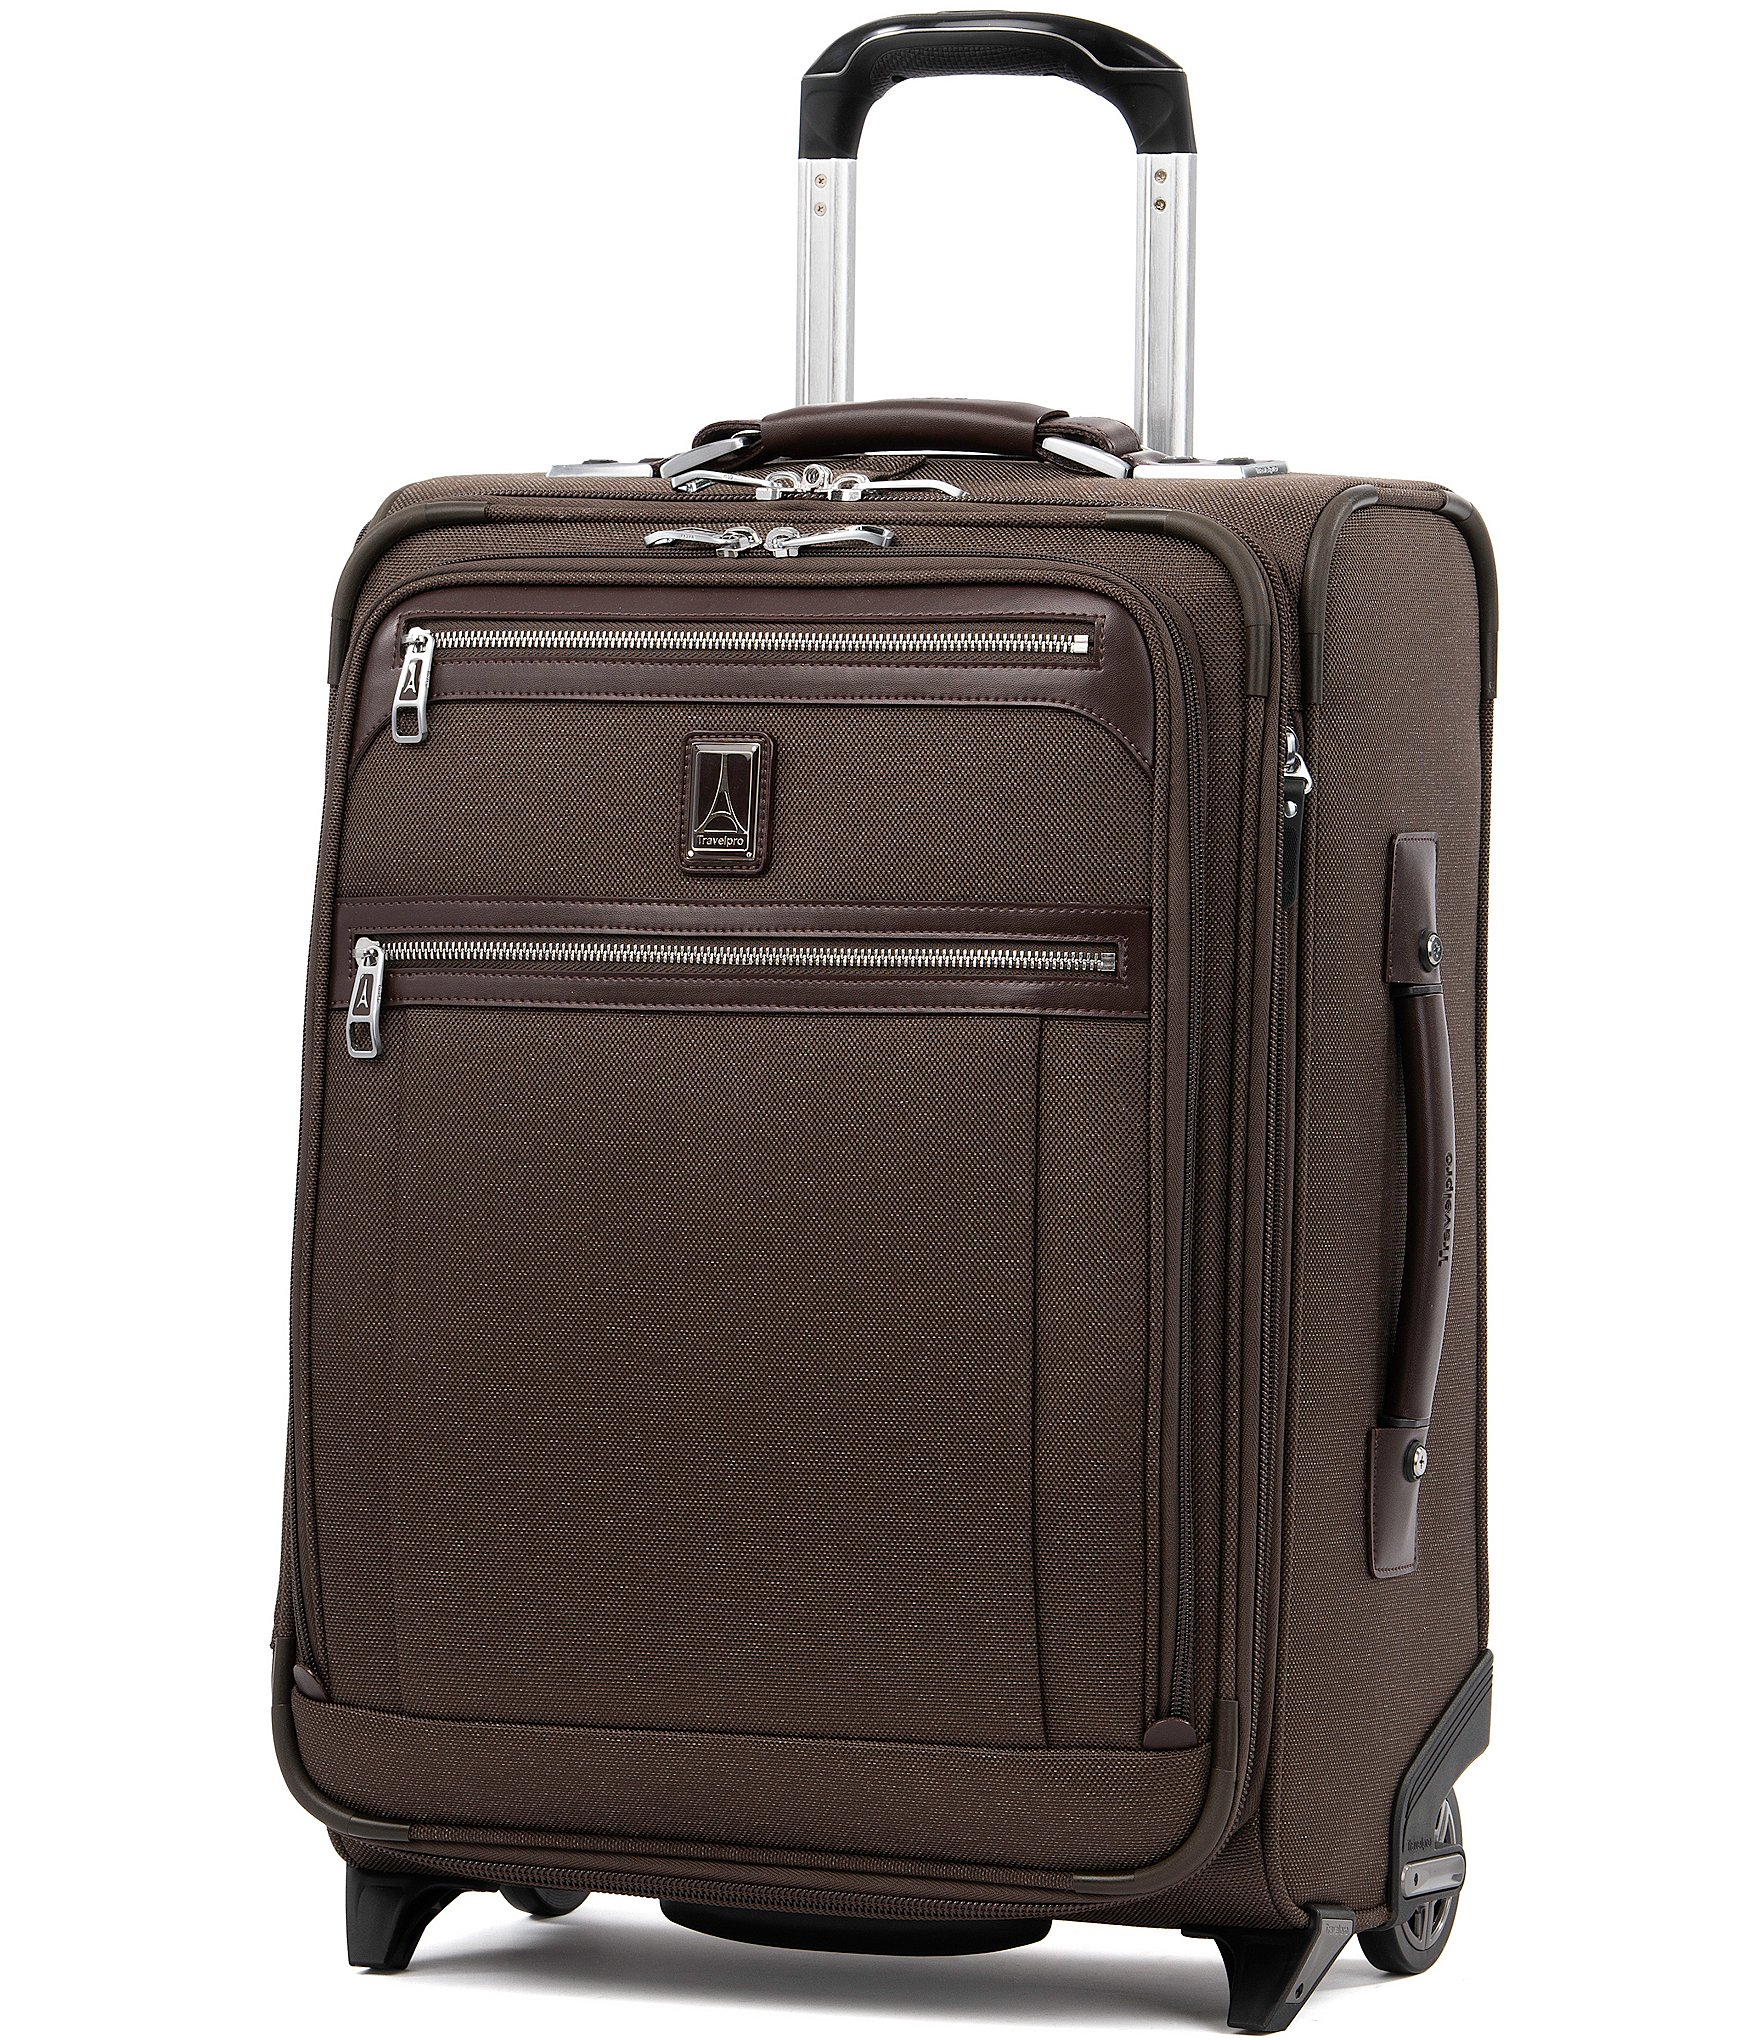 Travelpro Platinum Elite International Expandable Carry On Rollaboard Dillard S